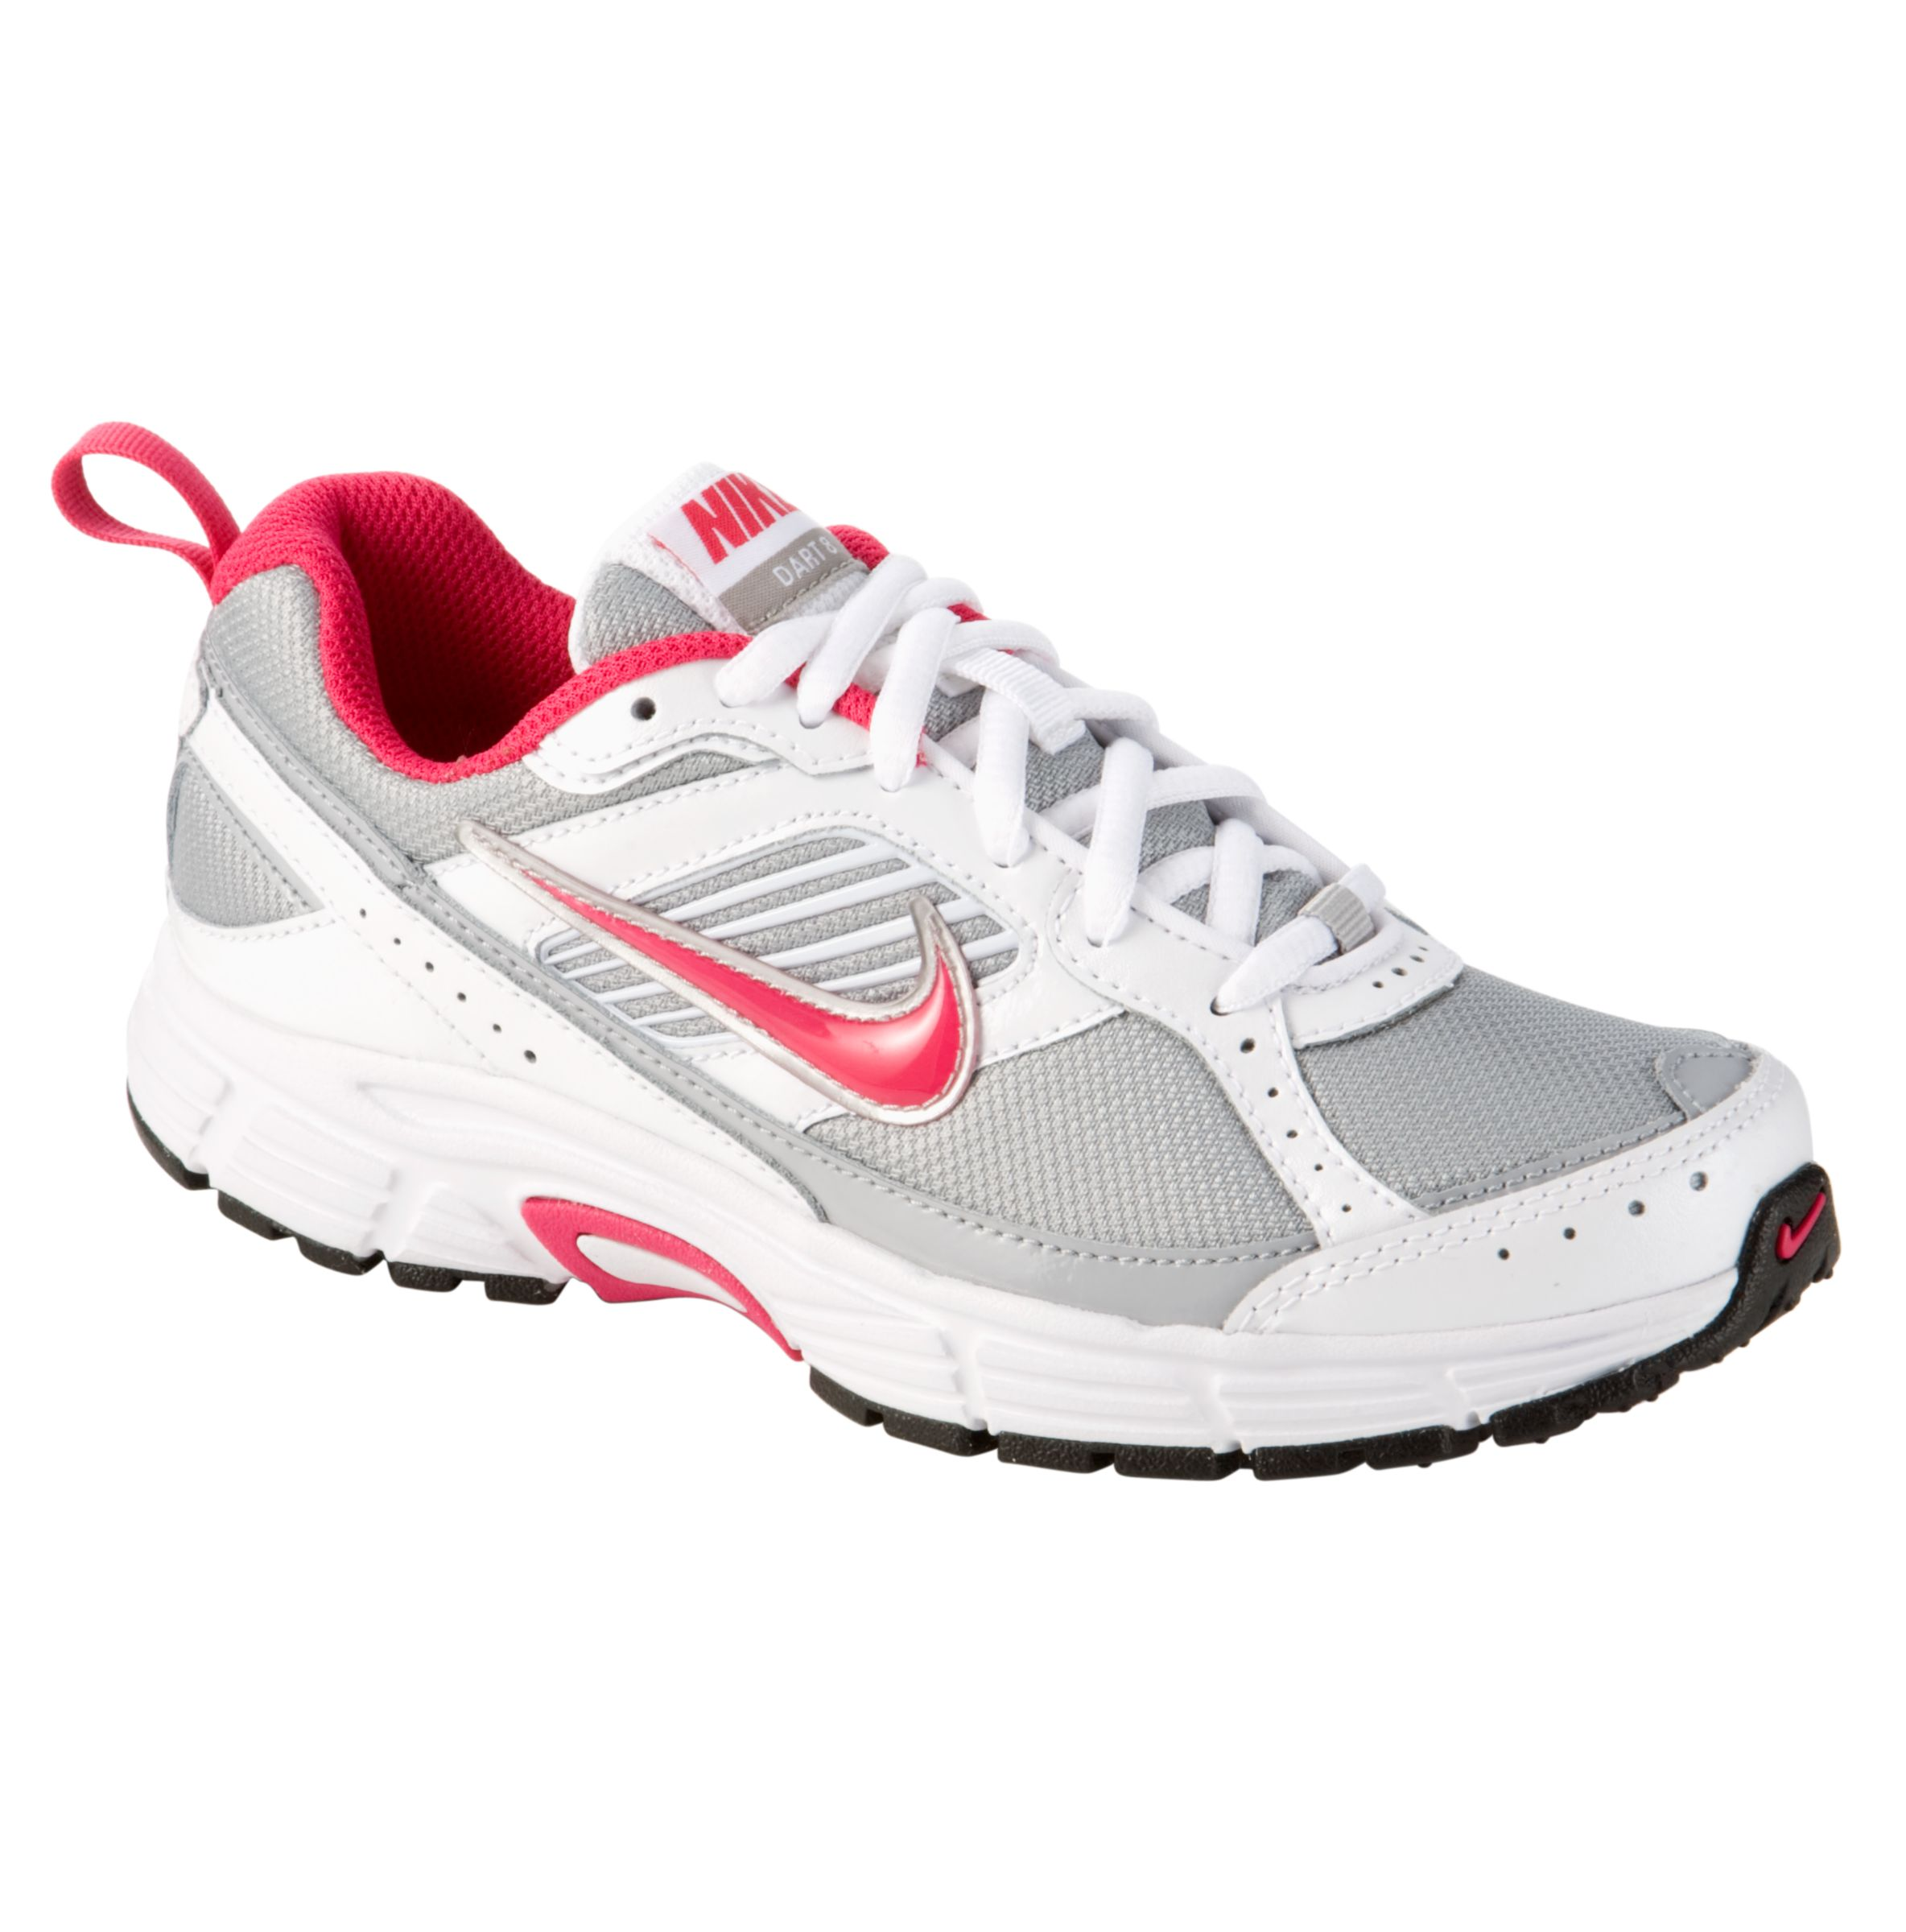 ... more reviews price alert link to this page more nike running shoes